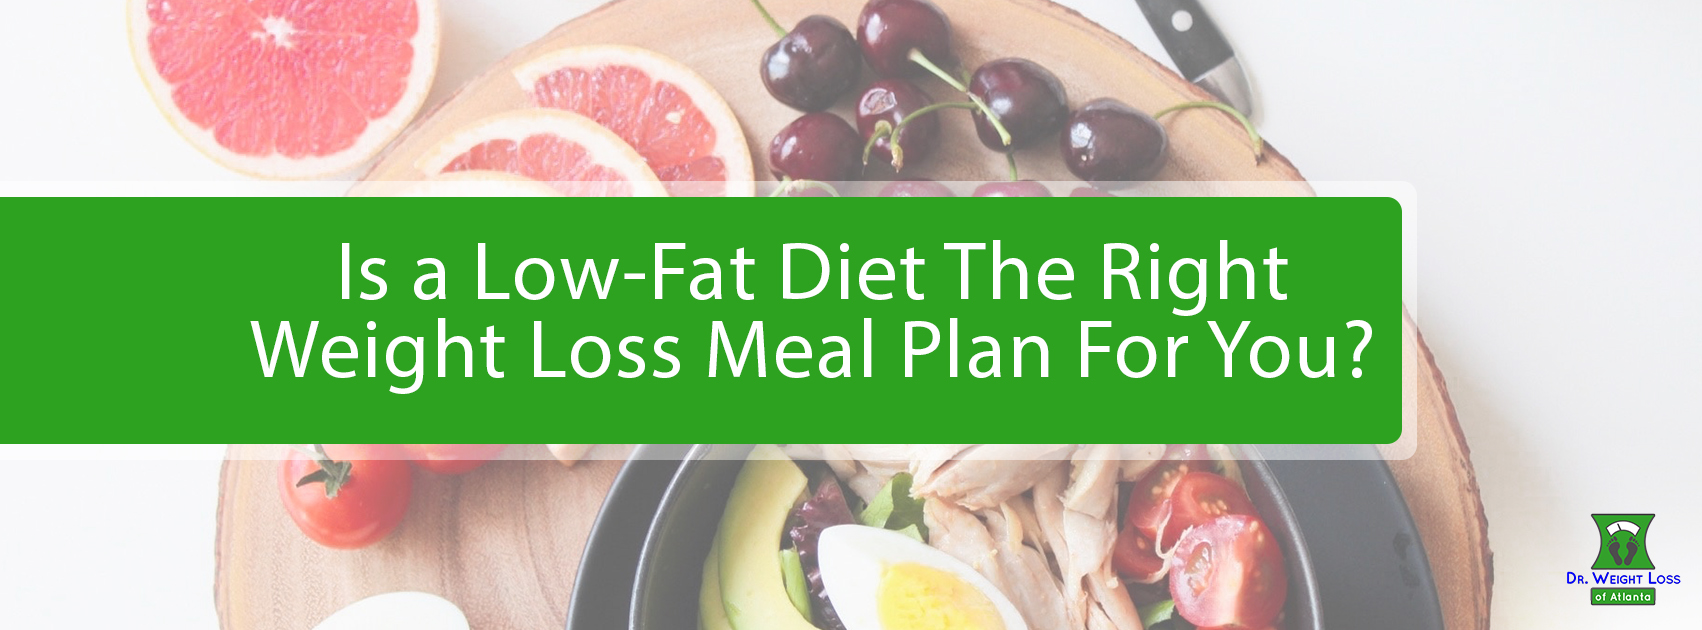 Is a Low-Fat Diet The Right Weight Loss Meal Plan For You?